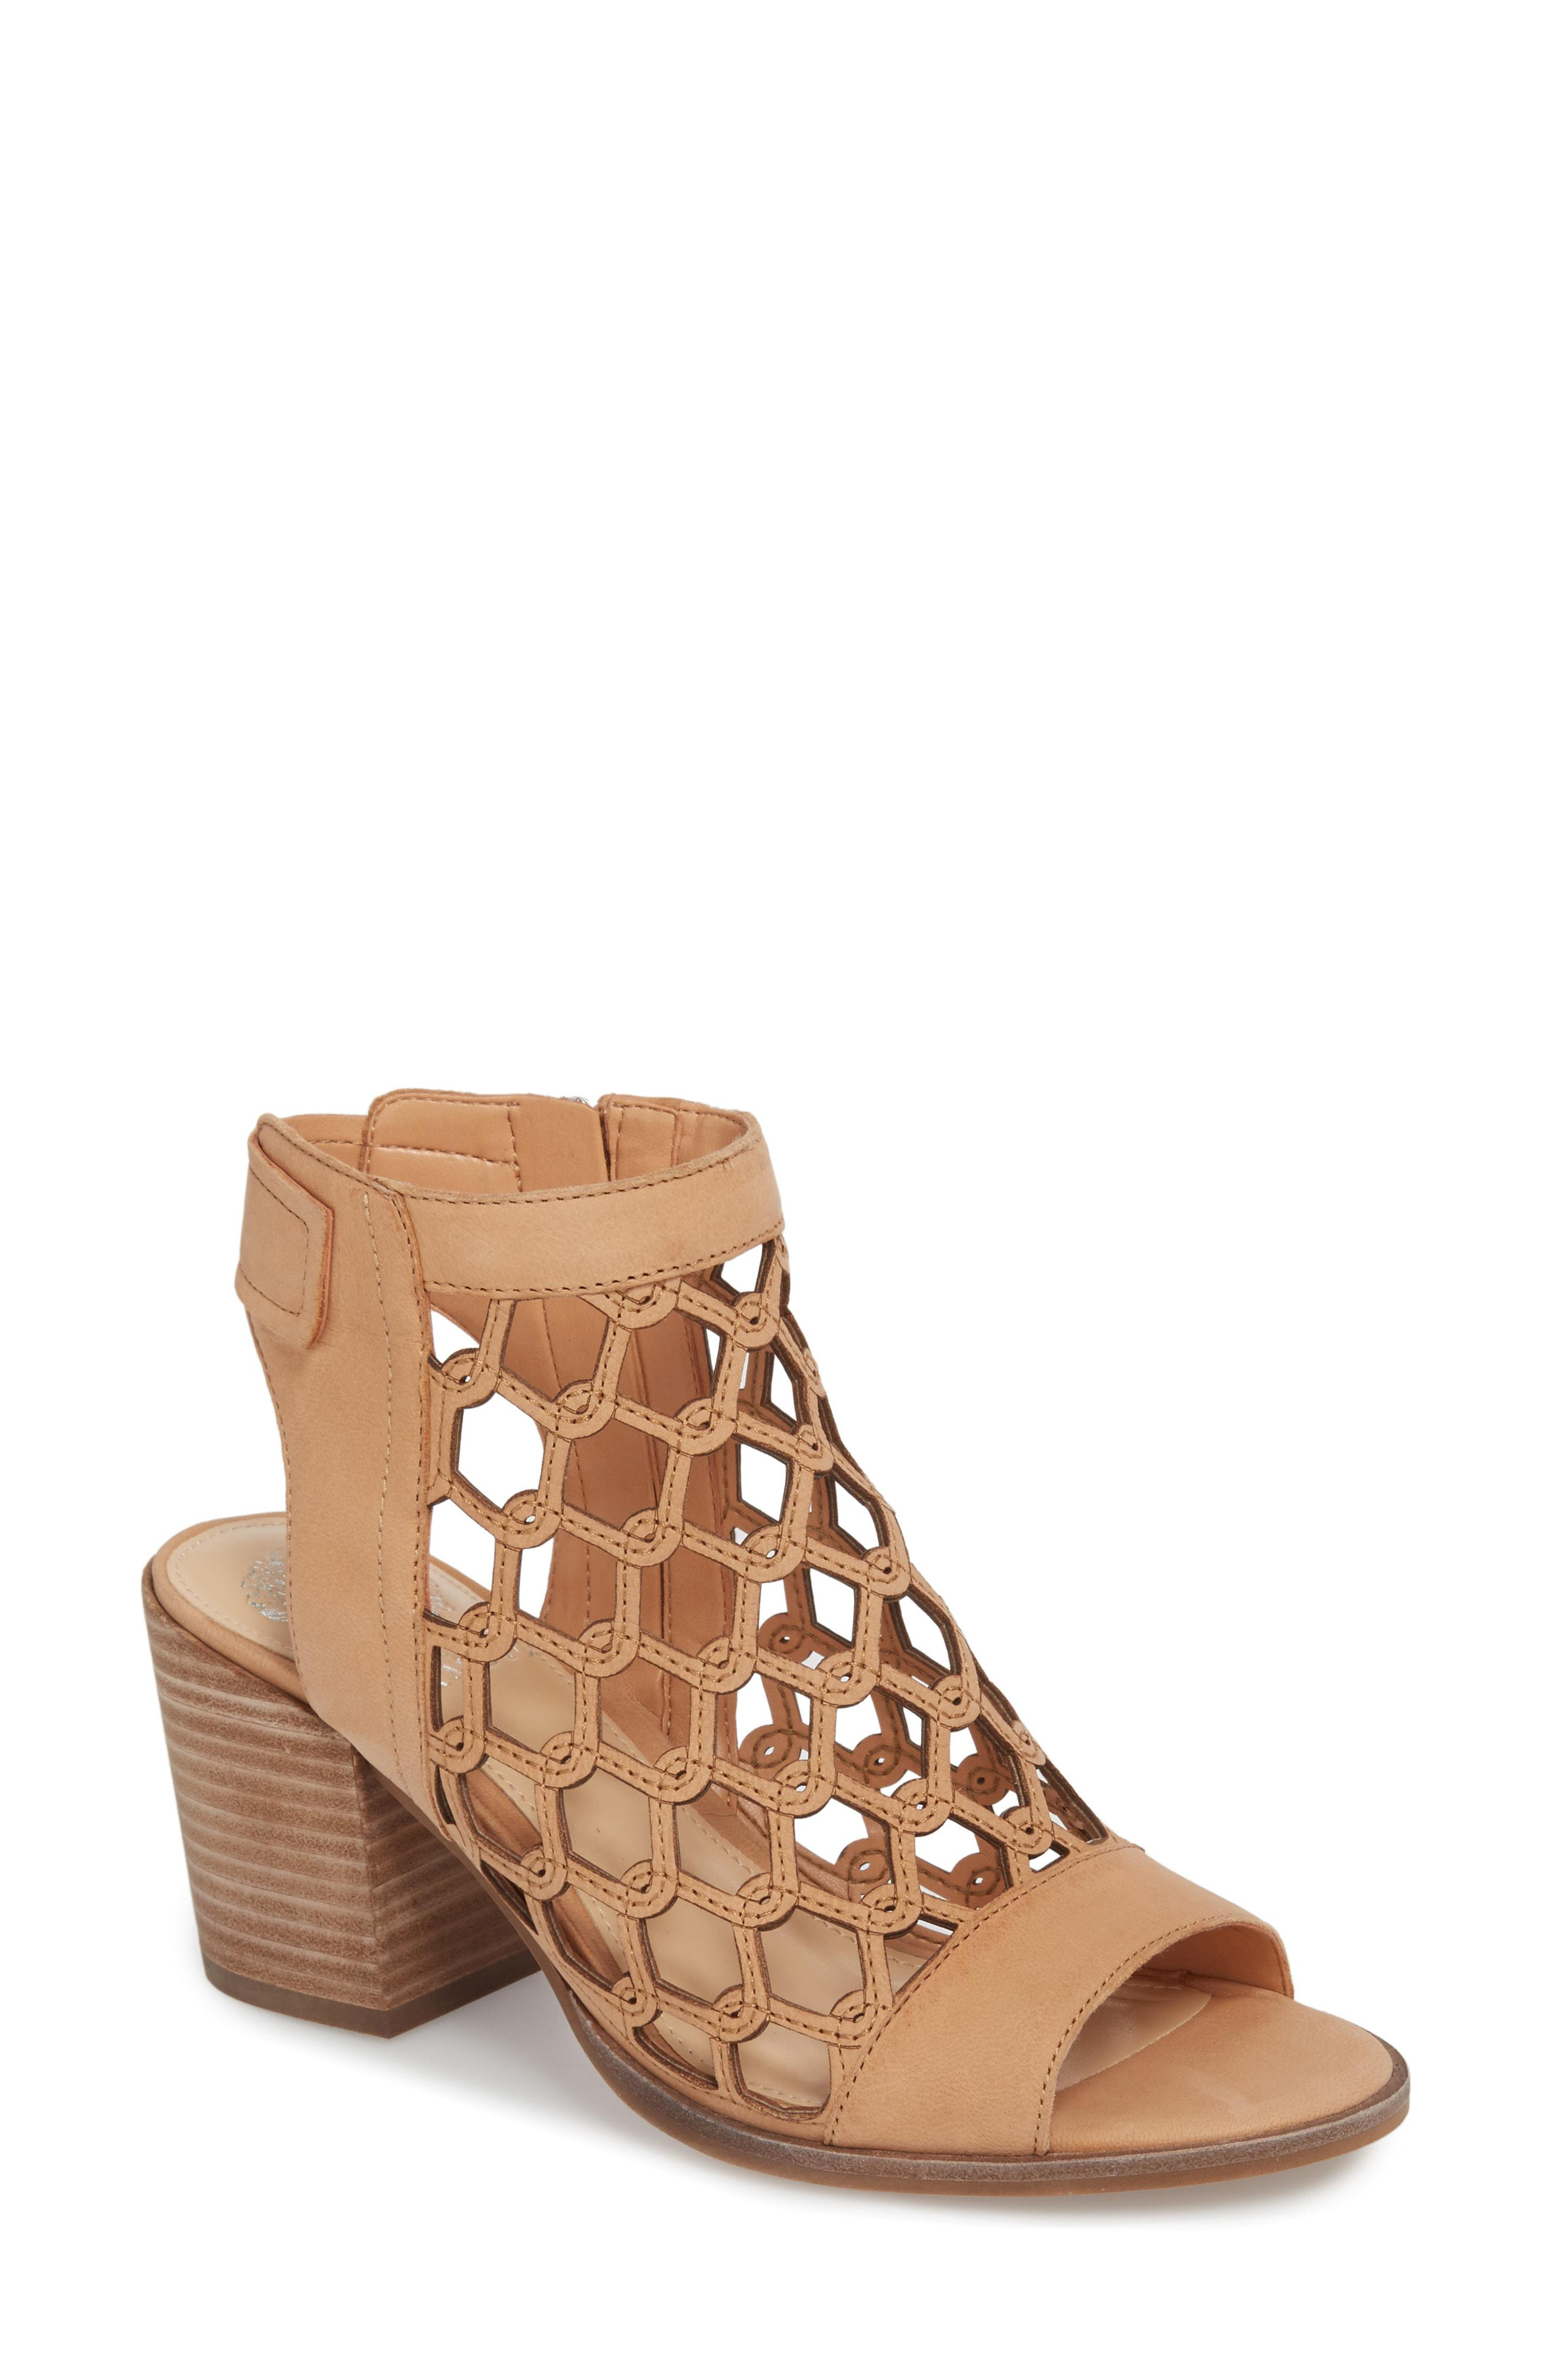 3bbd5b0bef3f Vince Camuto Lanaira Sandal in Brown - Lyst